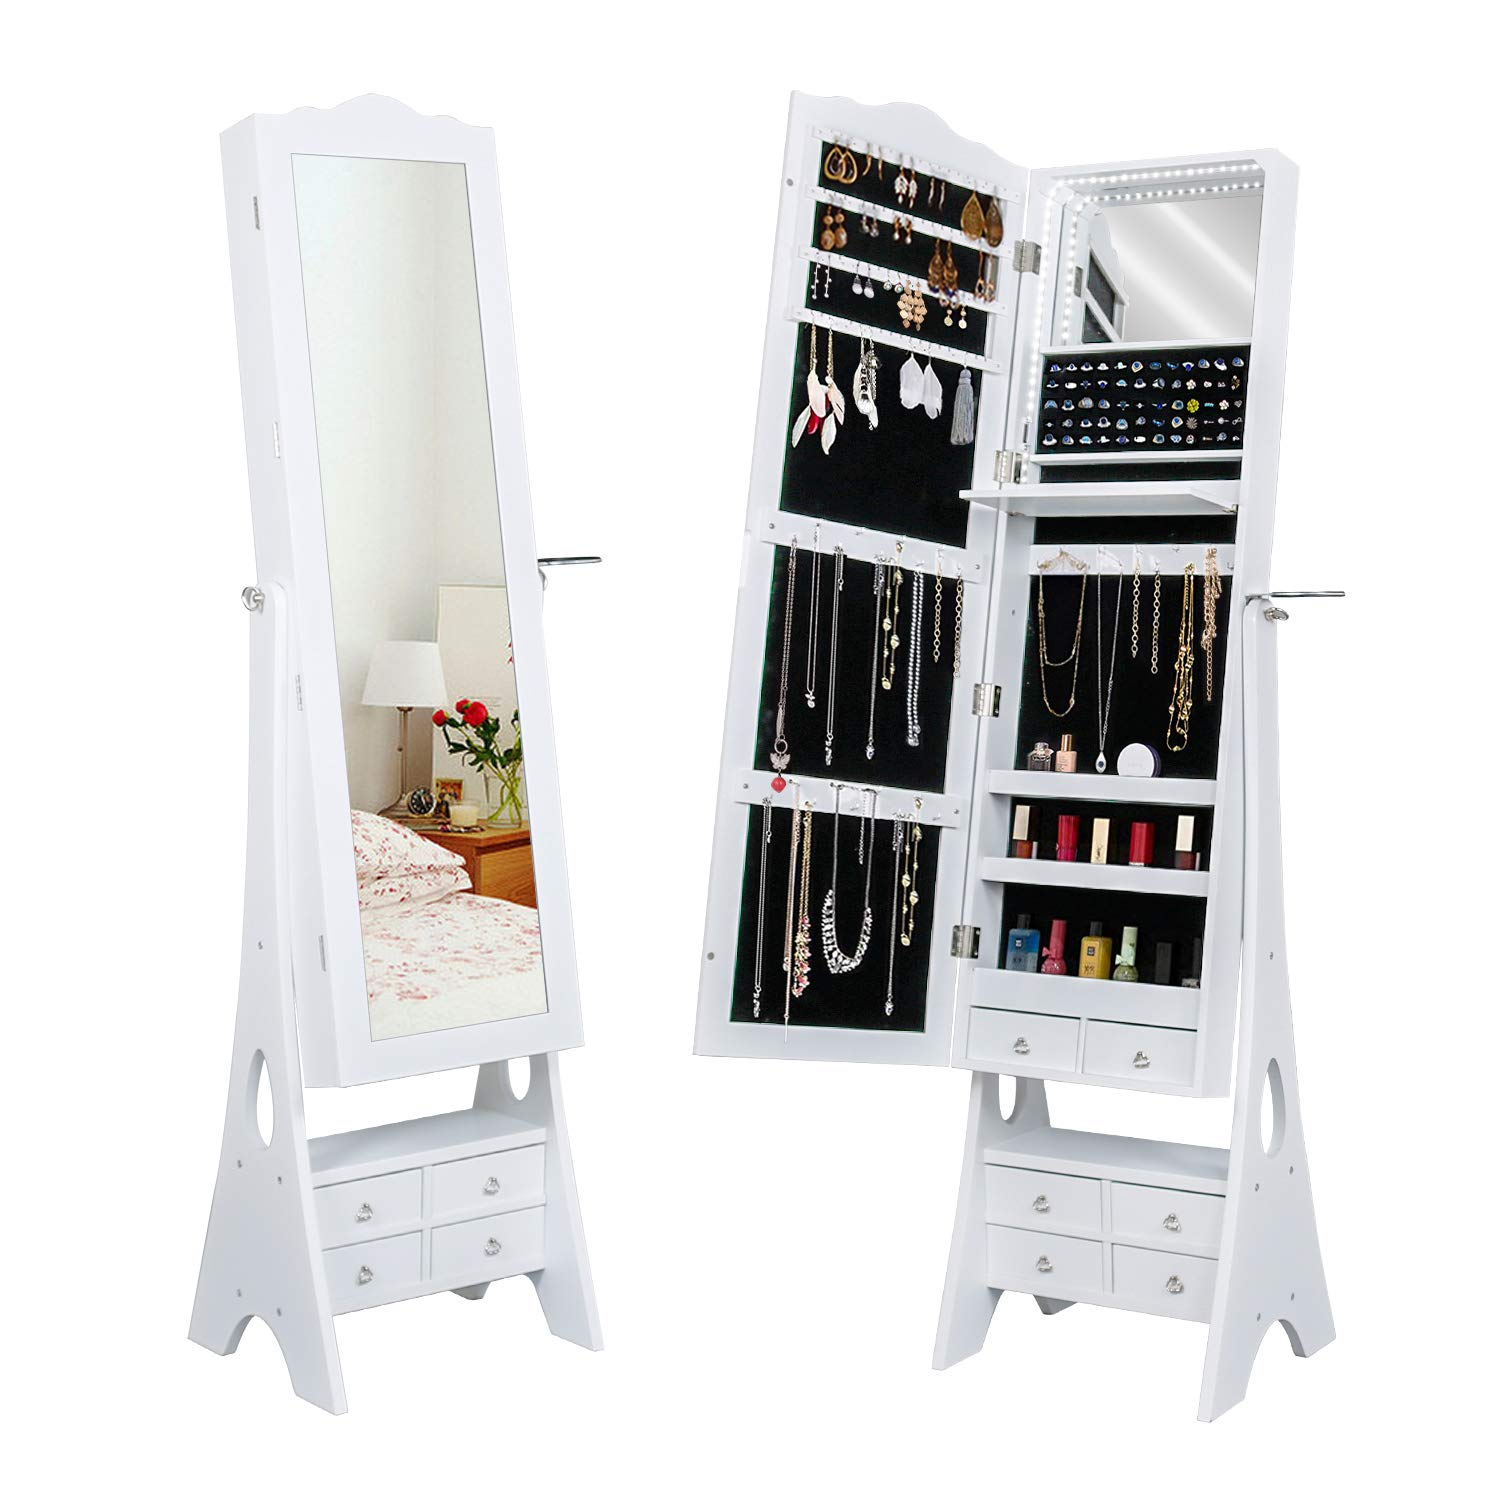 LED Mirrored Jewelry Cabinet Organizer, Full Length Standing Jewelry Storage Armoire with Makeup Tray&Large Capacity 6 Drawers &3 Adjustable Angle and Hair Dryer Storage (White)